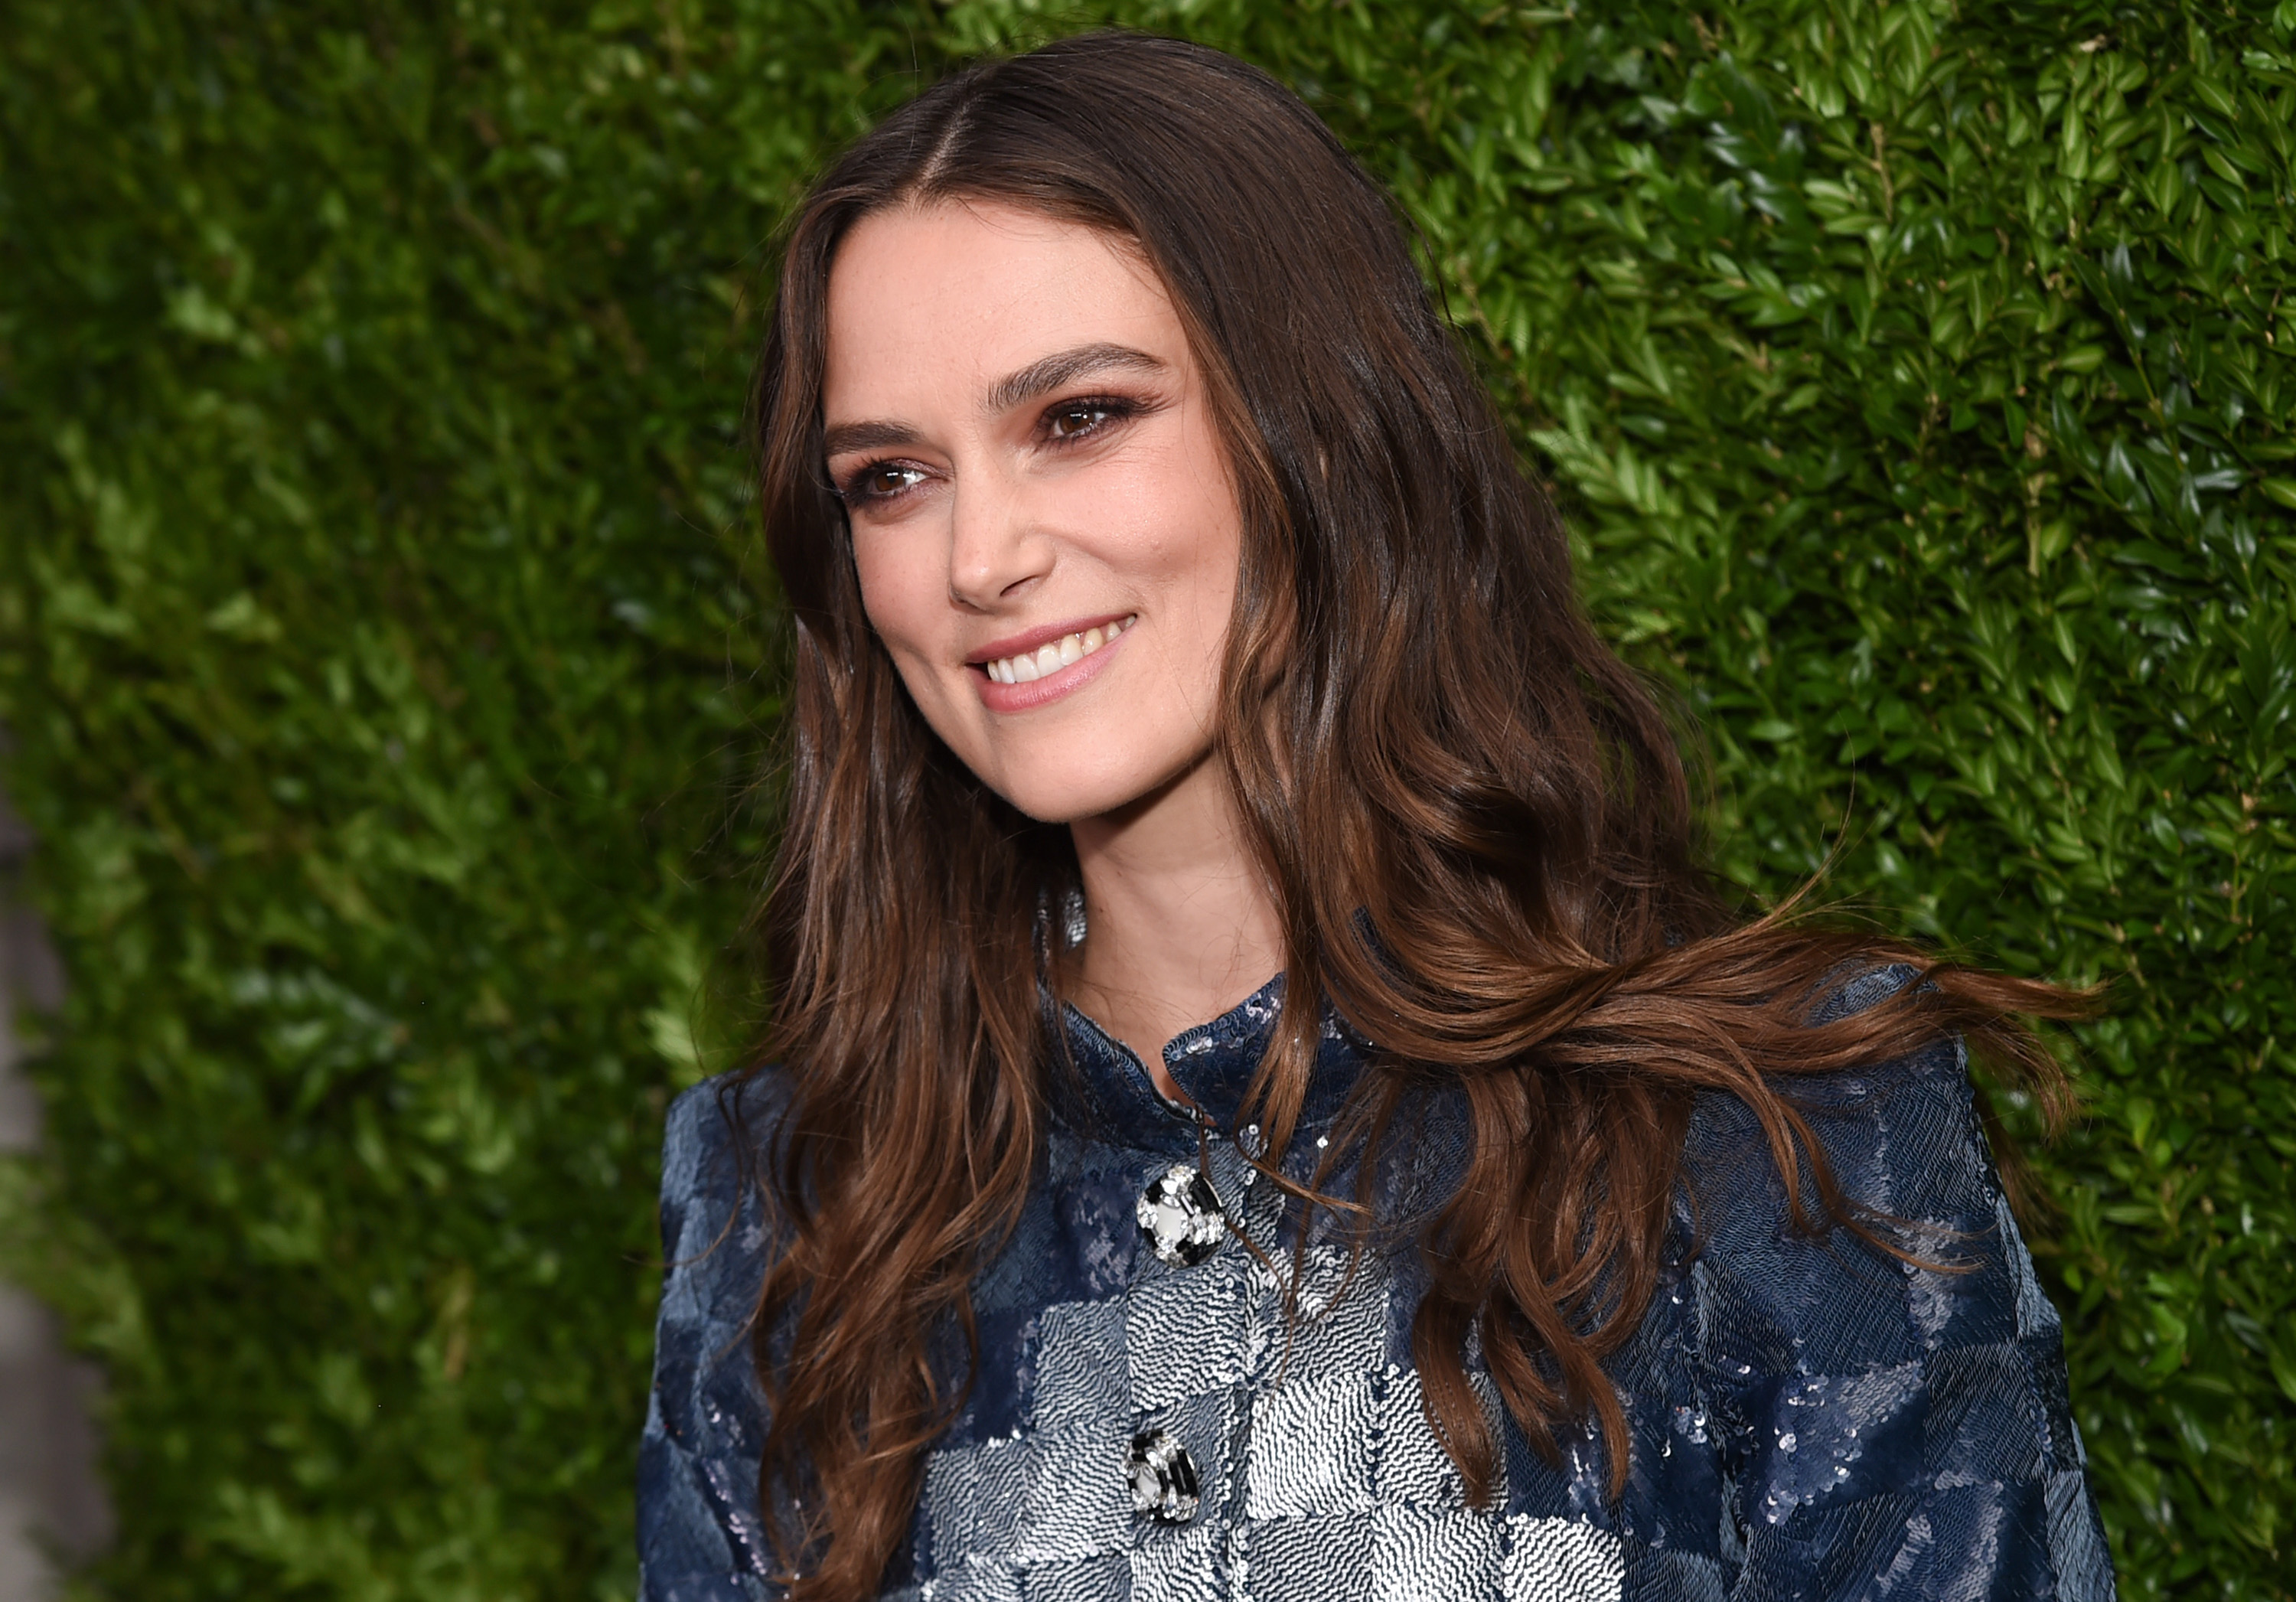 Actress Keira Knightley attends the CHANEL Fine Jewelry Dinner to celebrate the debut of The Jewel Box Boutique at Bergdorf Goodman, in New YorkCHANEL Fine Jewelry Dinner, New York, USA - 6 Sep 2016